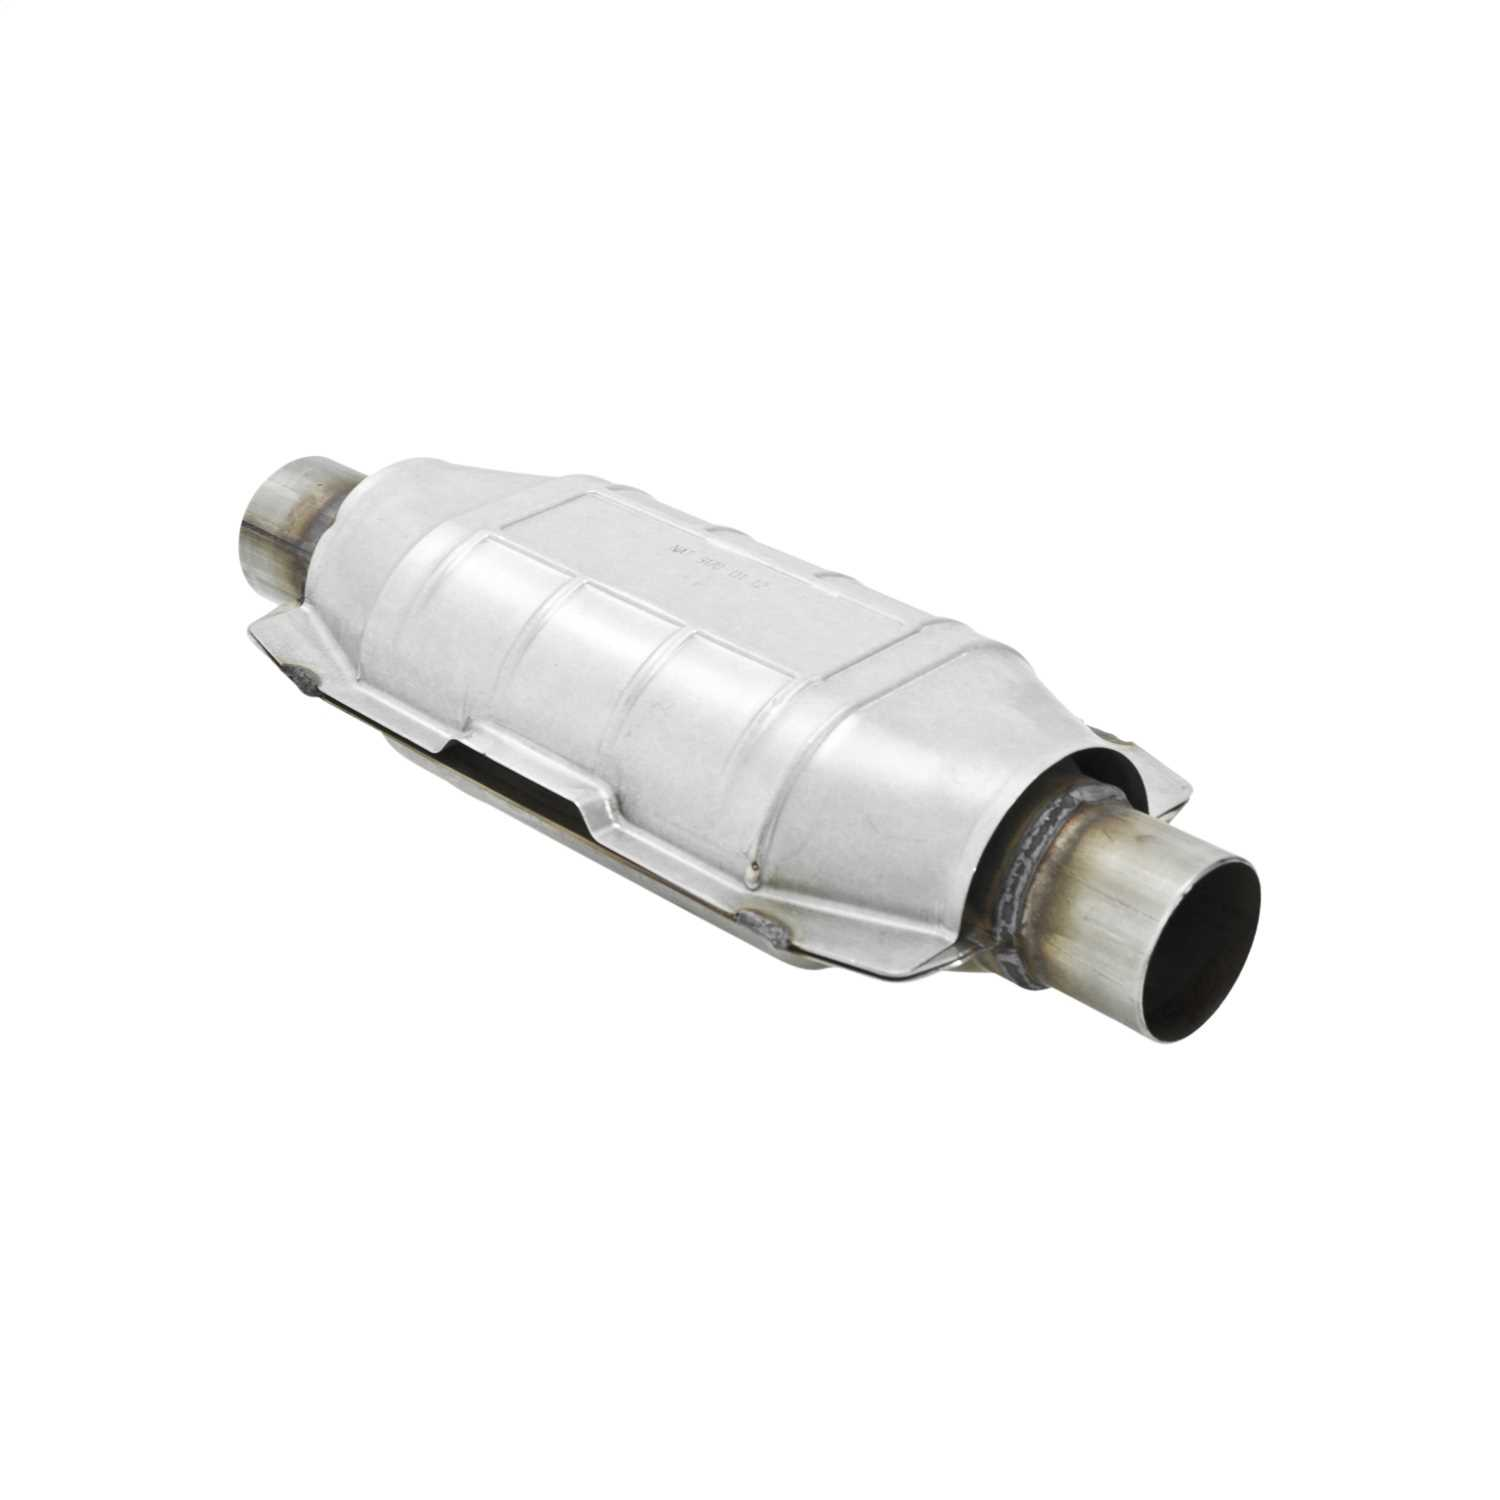 2250225 Flowmaster 49 State Catalytic Converters Universal Catalytic Converter